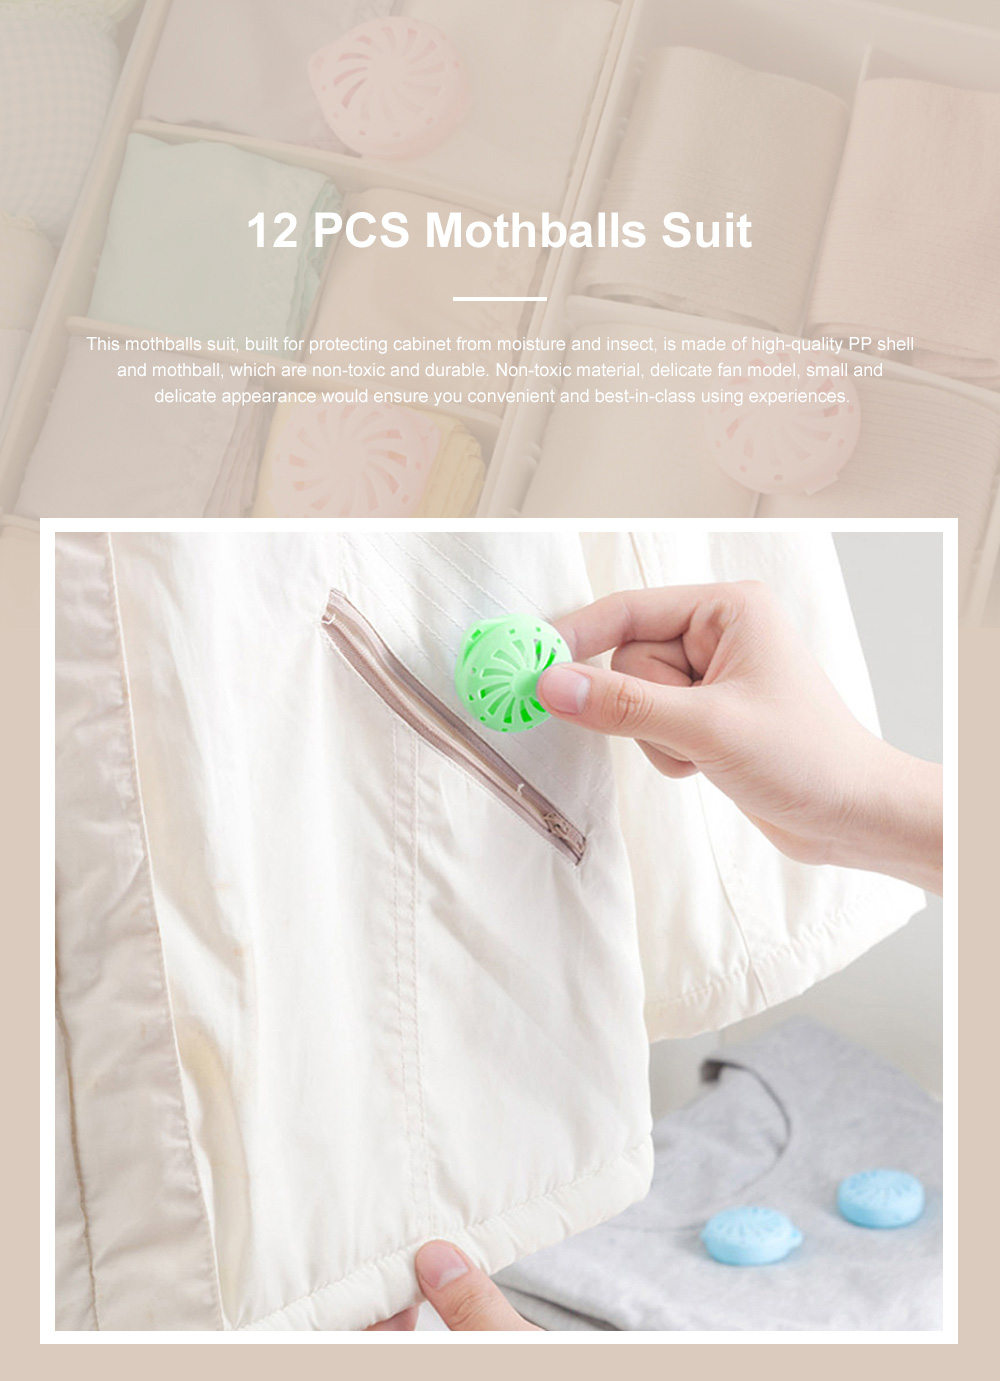 Small Delicate Closet Wardrobe Drawer Cabinet Moisture-proof Mould-proof Mothproof Get off Odor 12PCS Mothballs Suit Insect-resist Balls 0